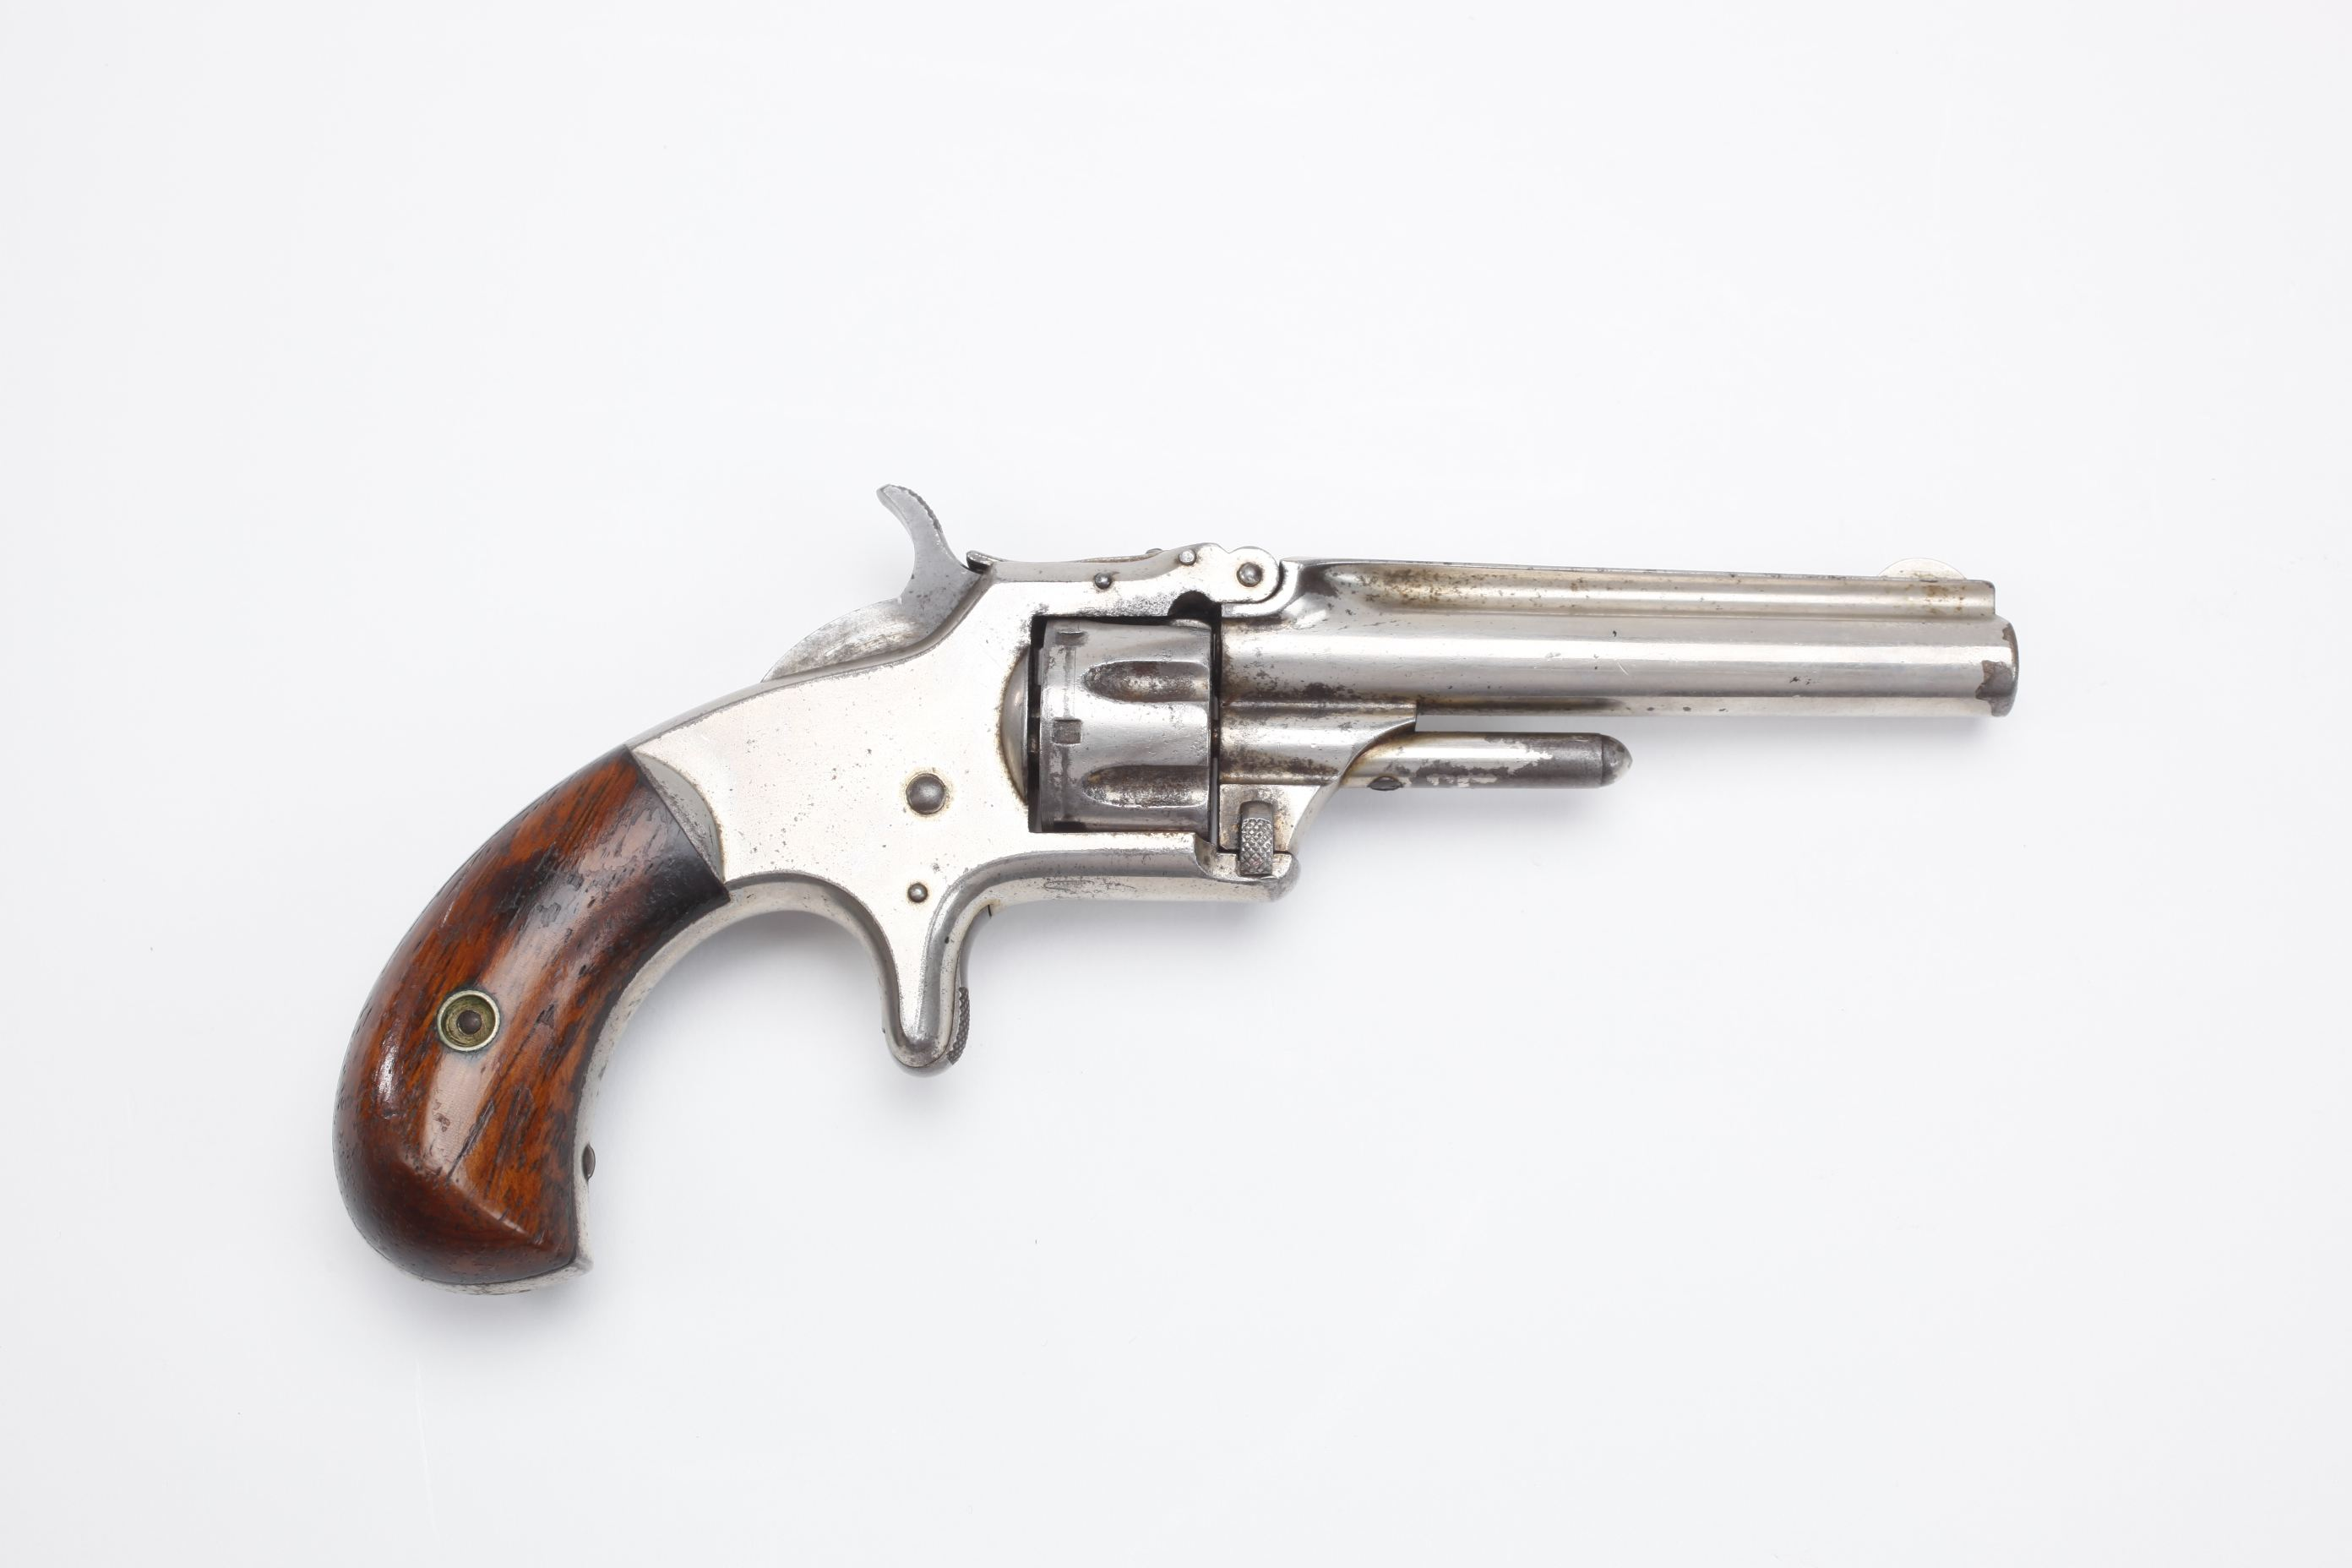 Smith & Wesson Model No 1 Third Issue revolver